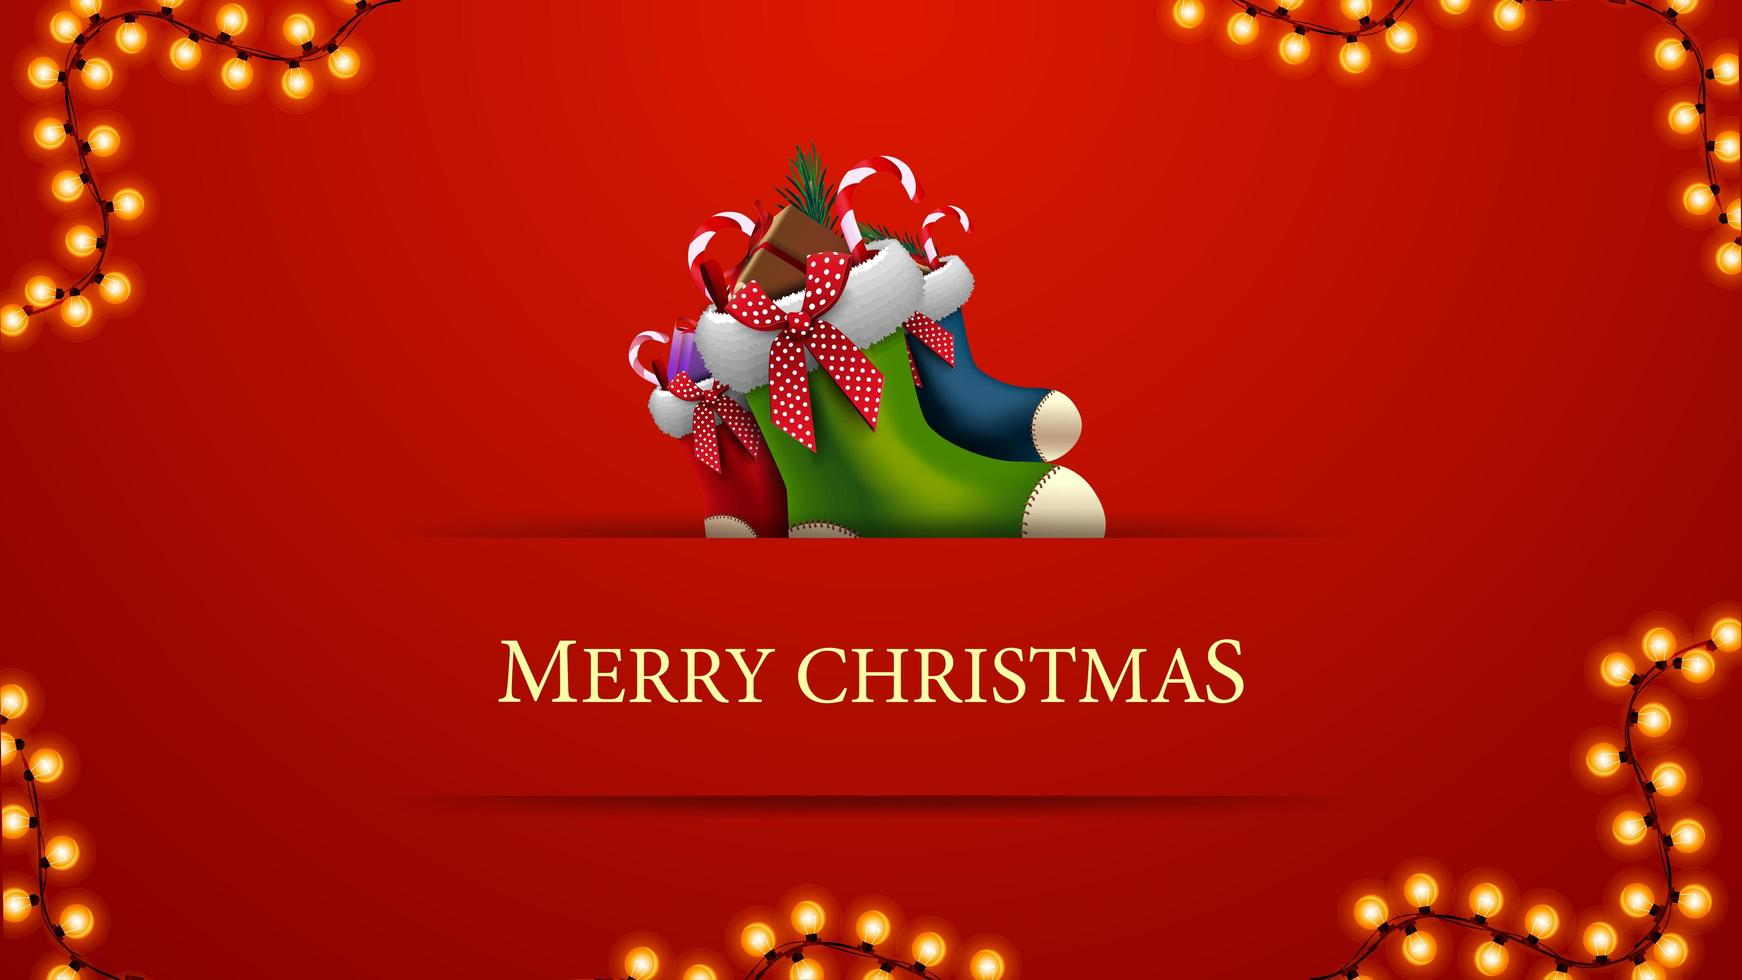 Merry Christmas, red postcard in minimalistic style with Christmas stockings and garland vector